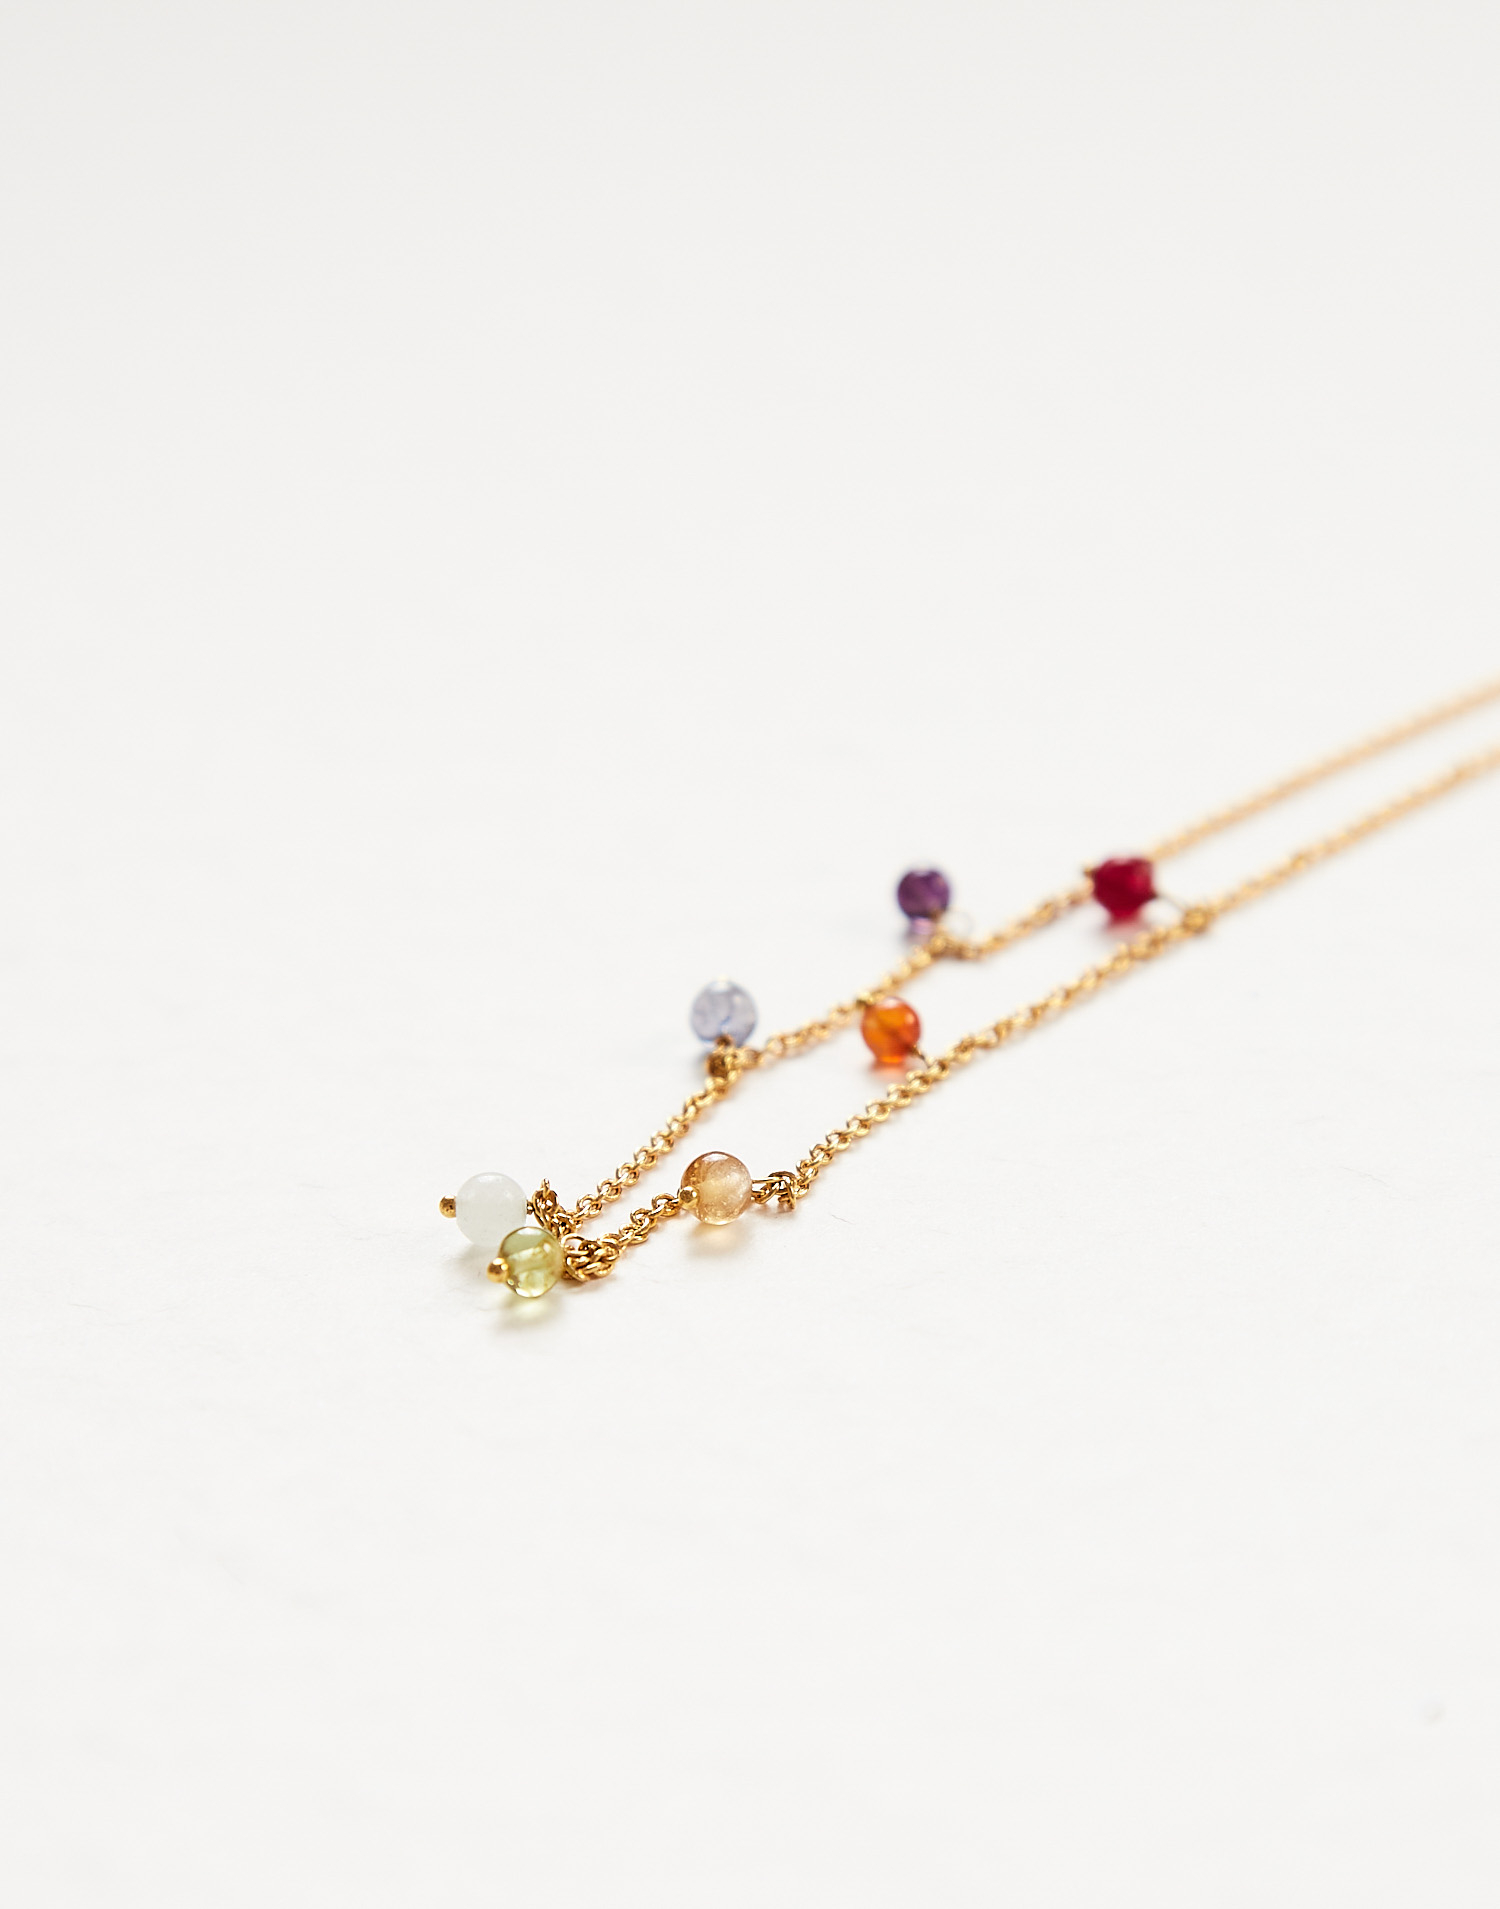 Gold plated chakras necklace